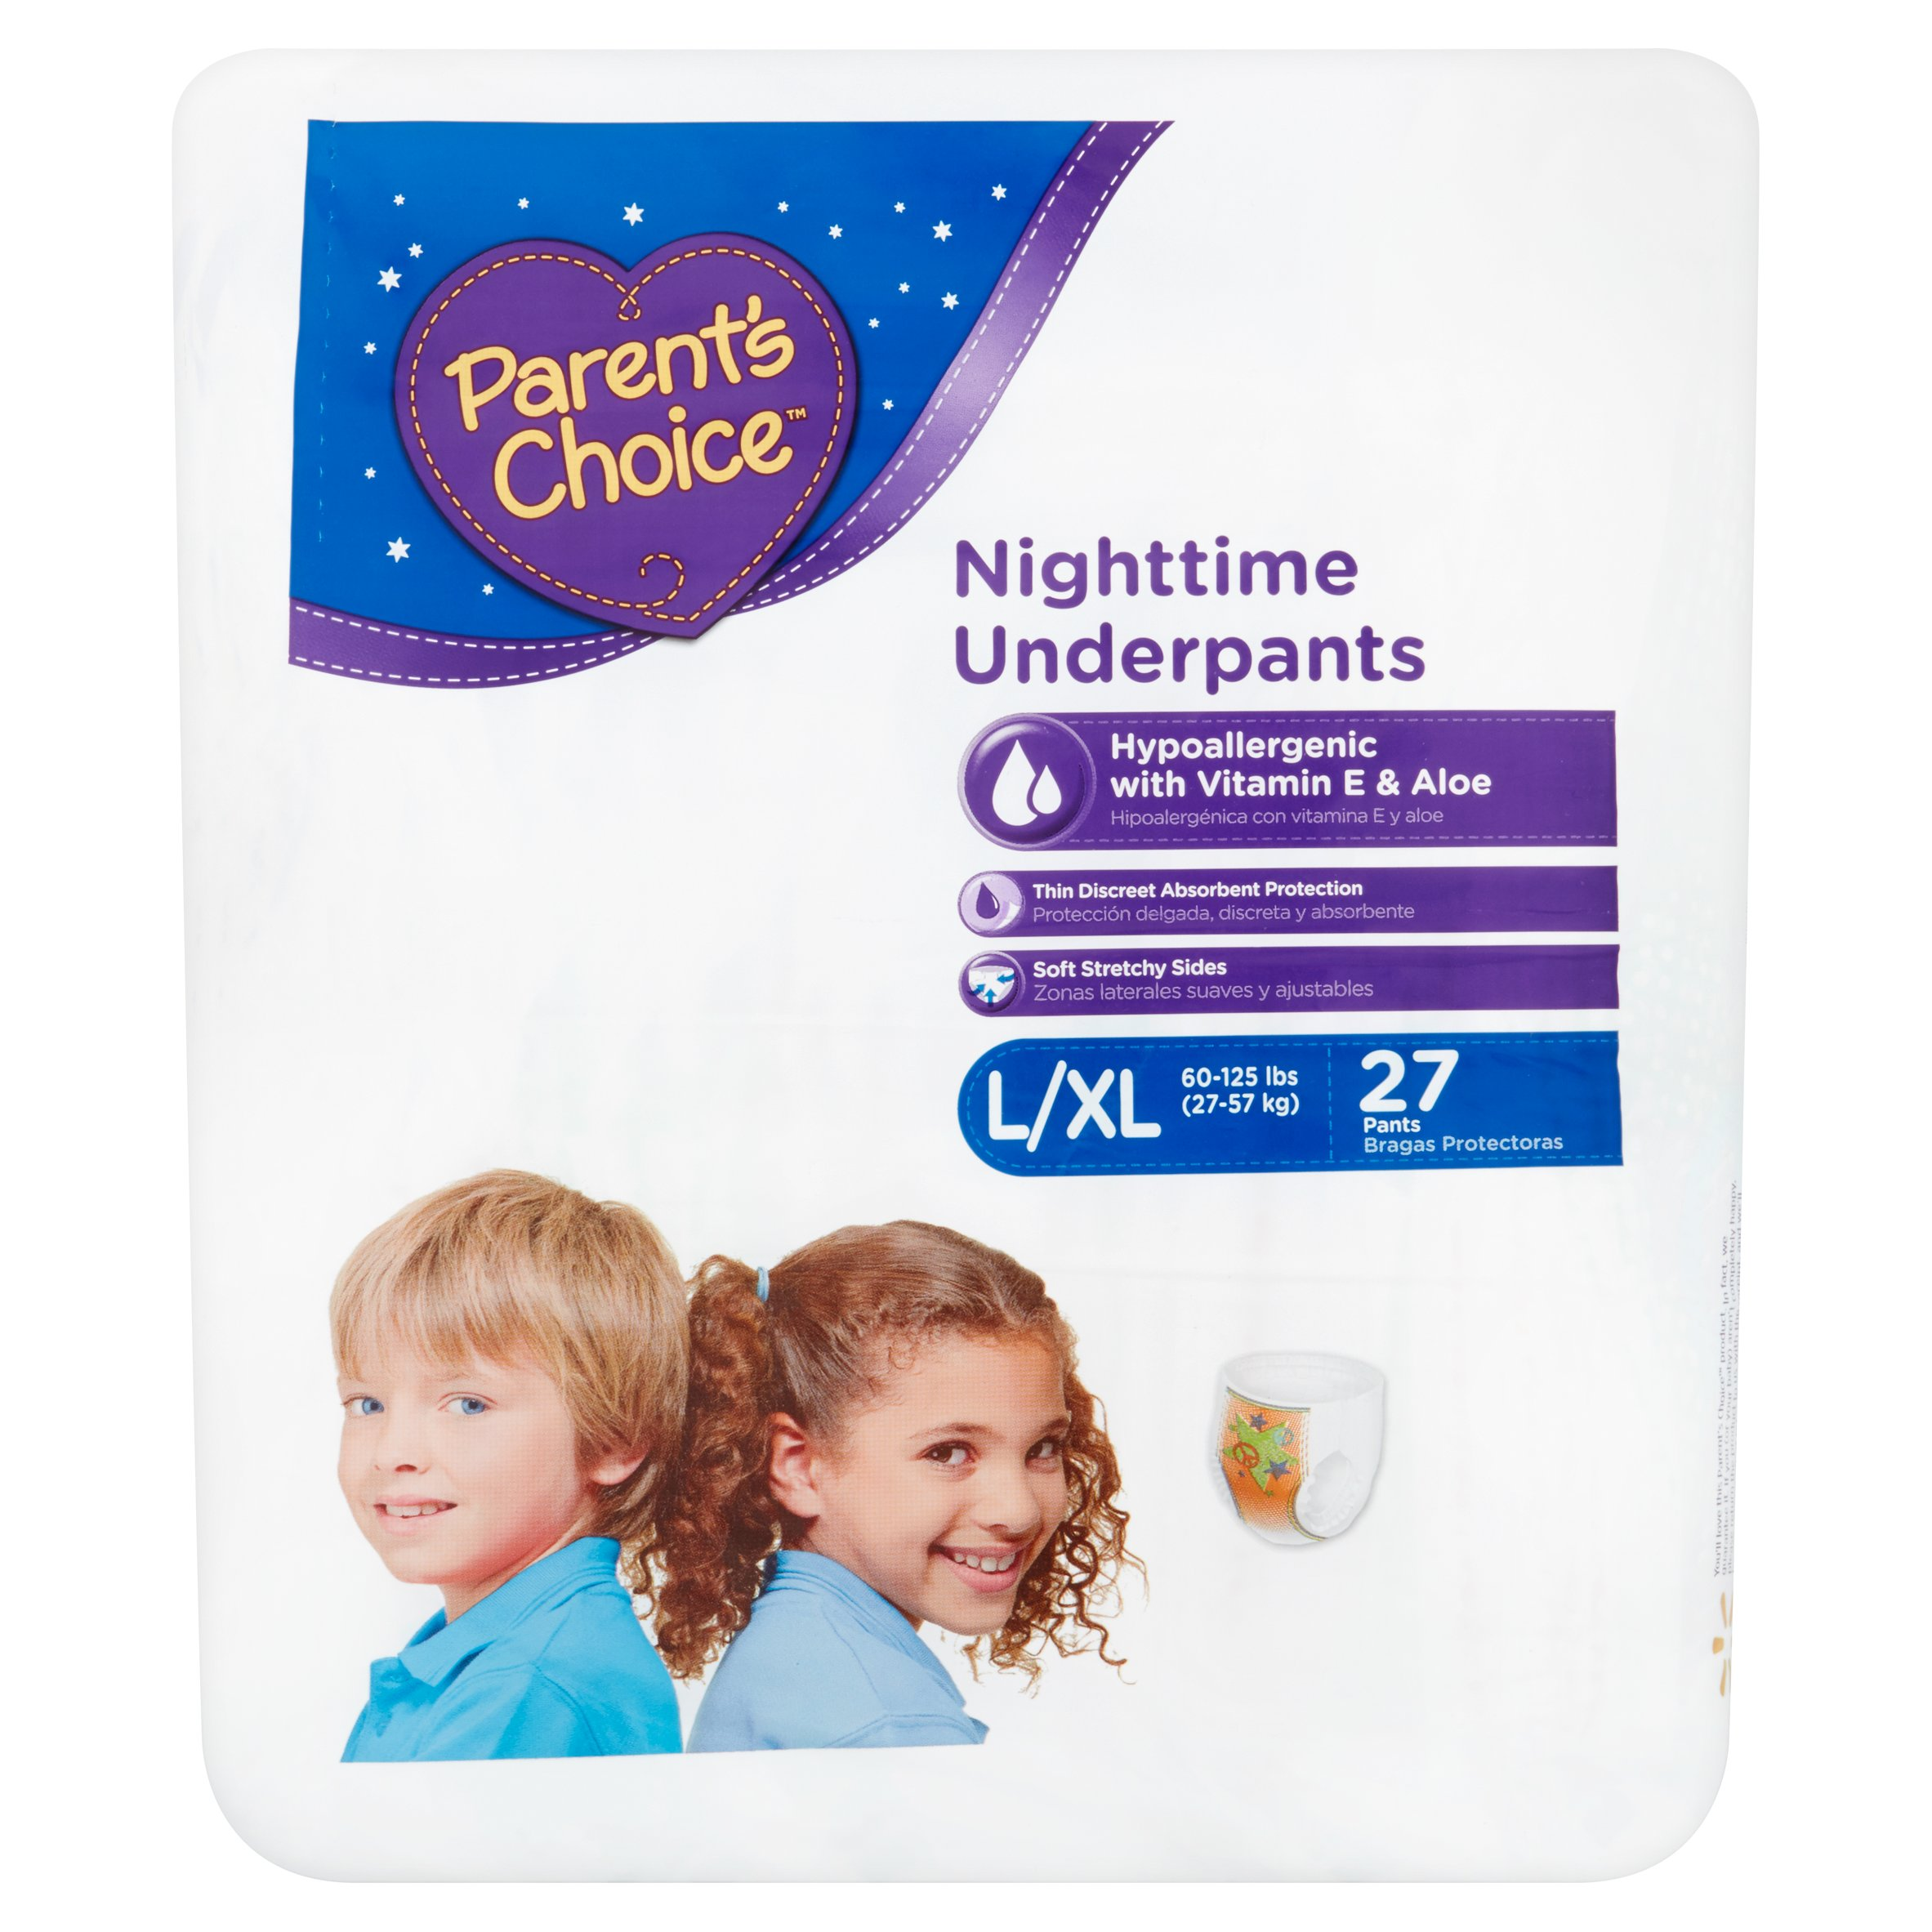 Parent's Choice Nighttime Underpants L/XL 60-125lbs, 27 count